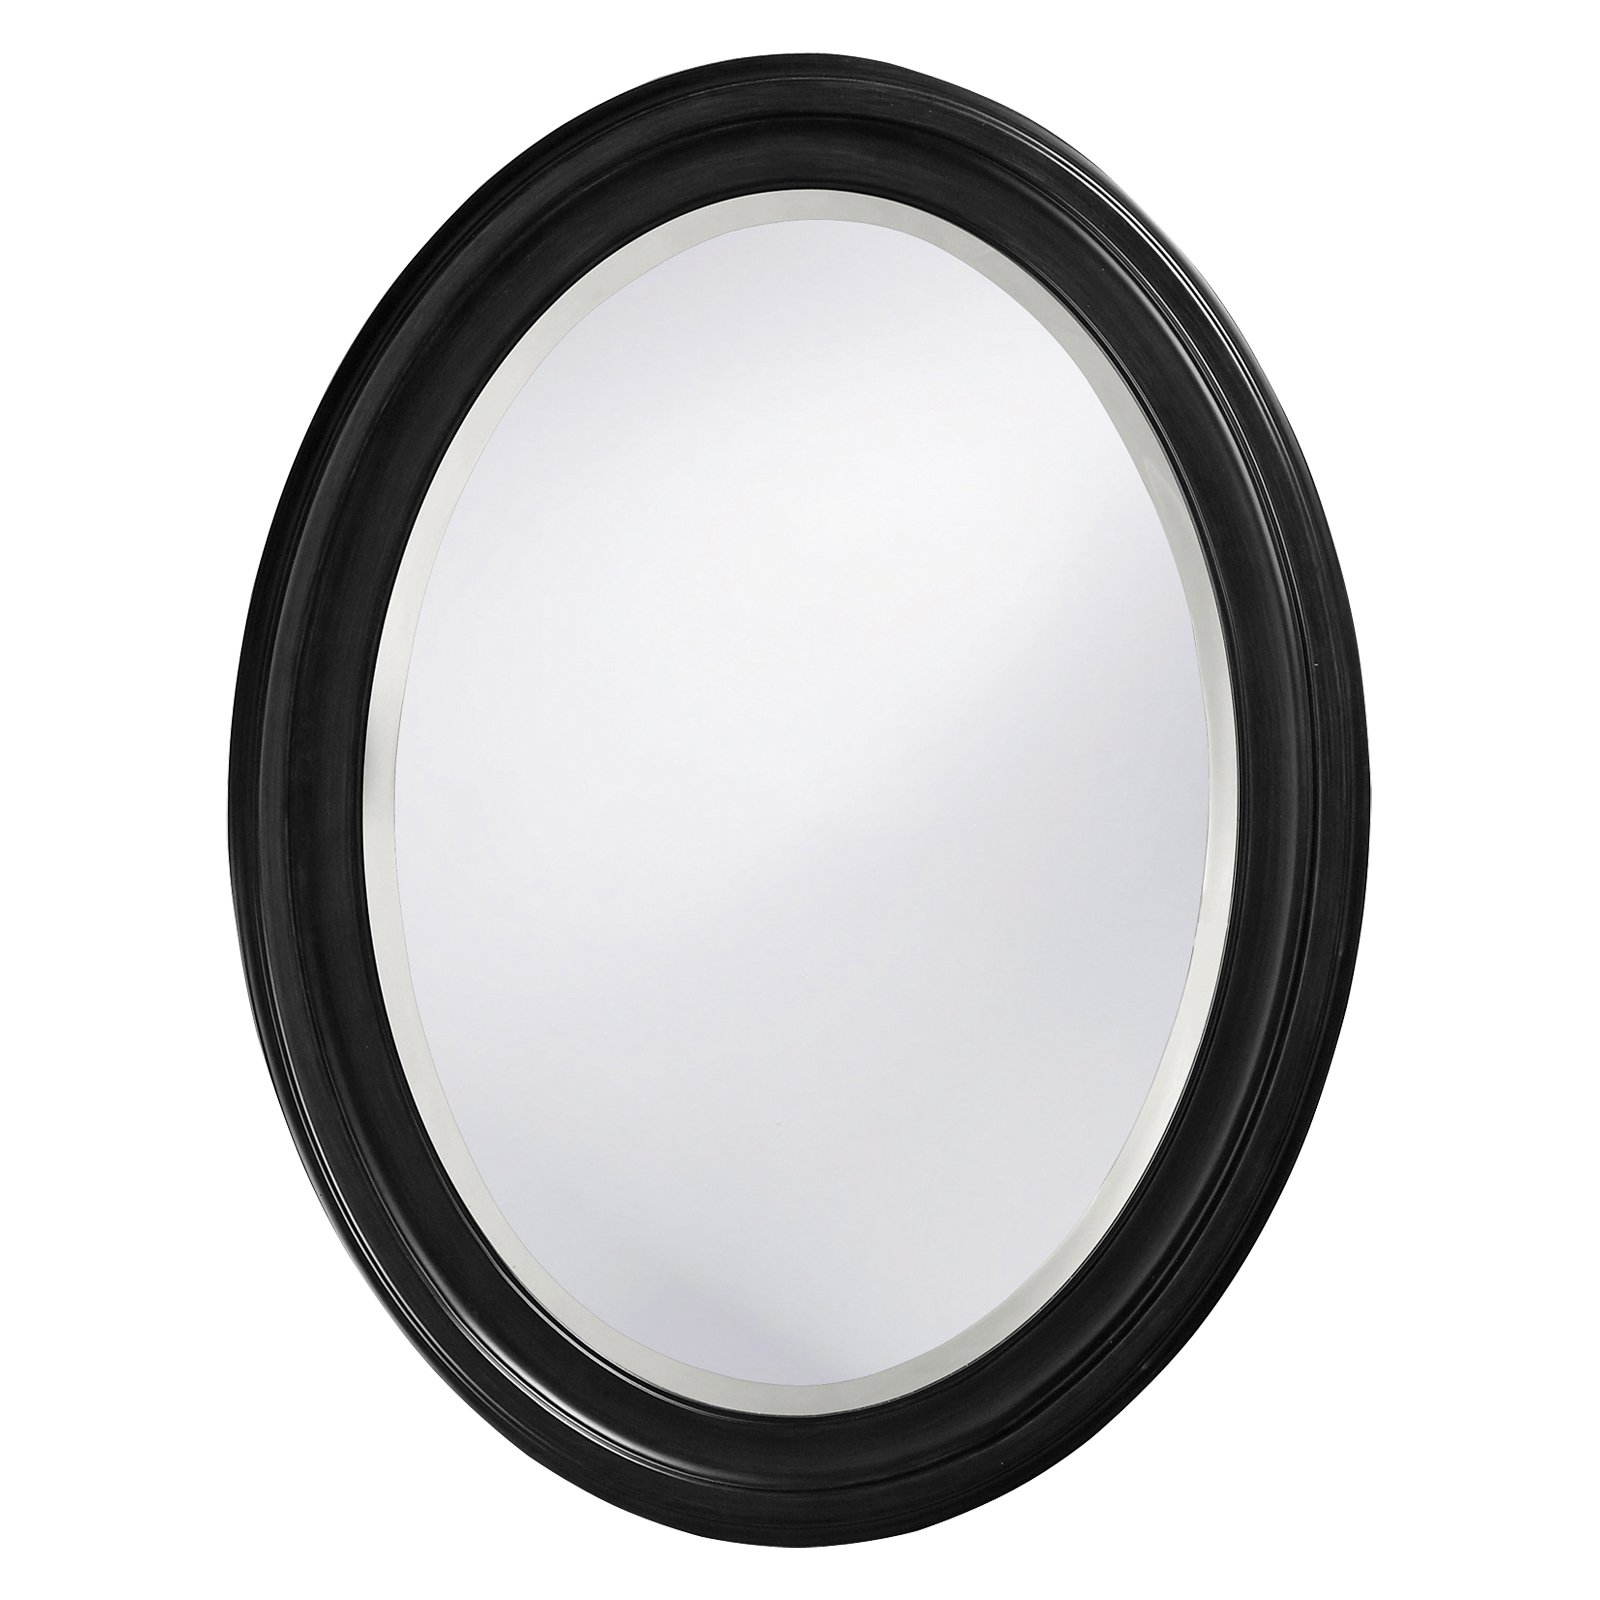 Belham Living Oval Wall Mirror Black 25W x 33H in. by Howard Elliott